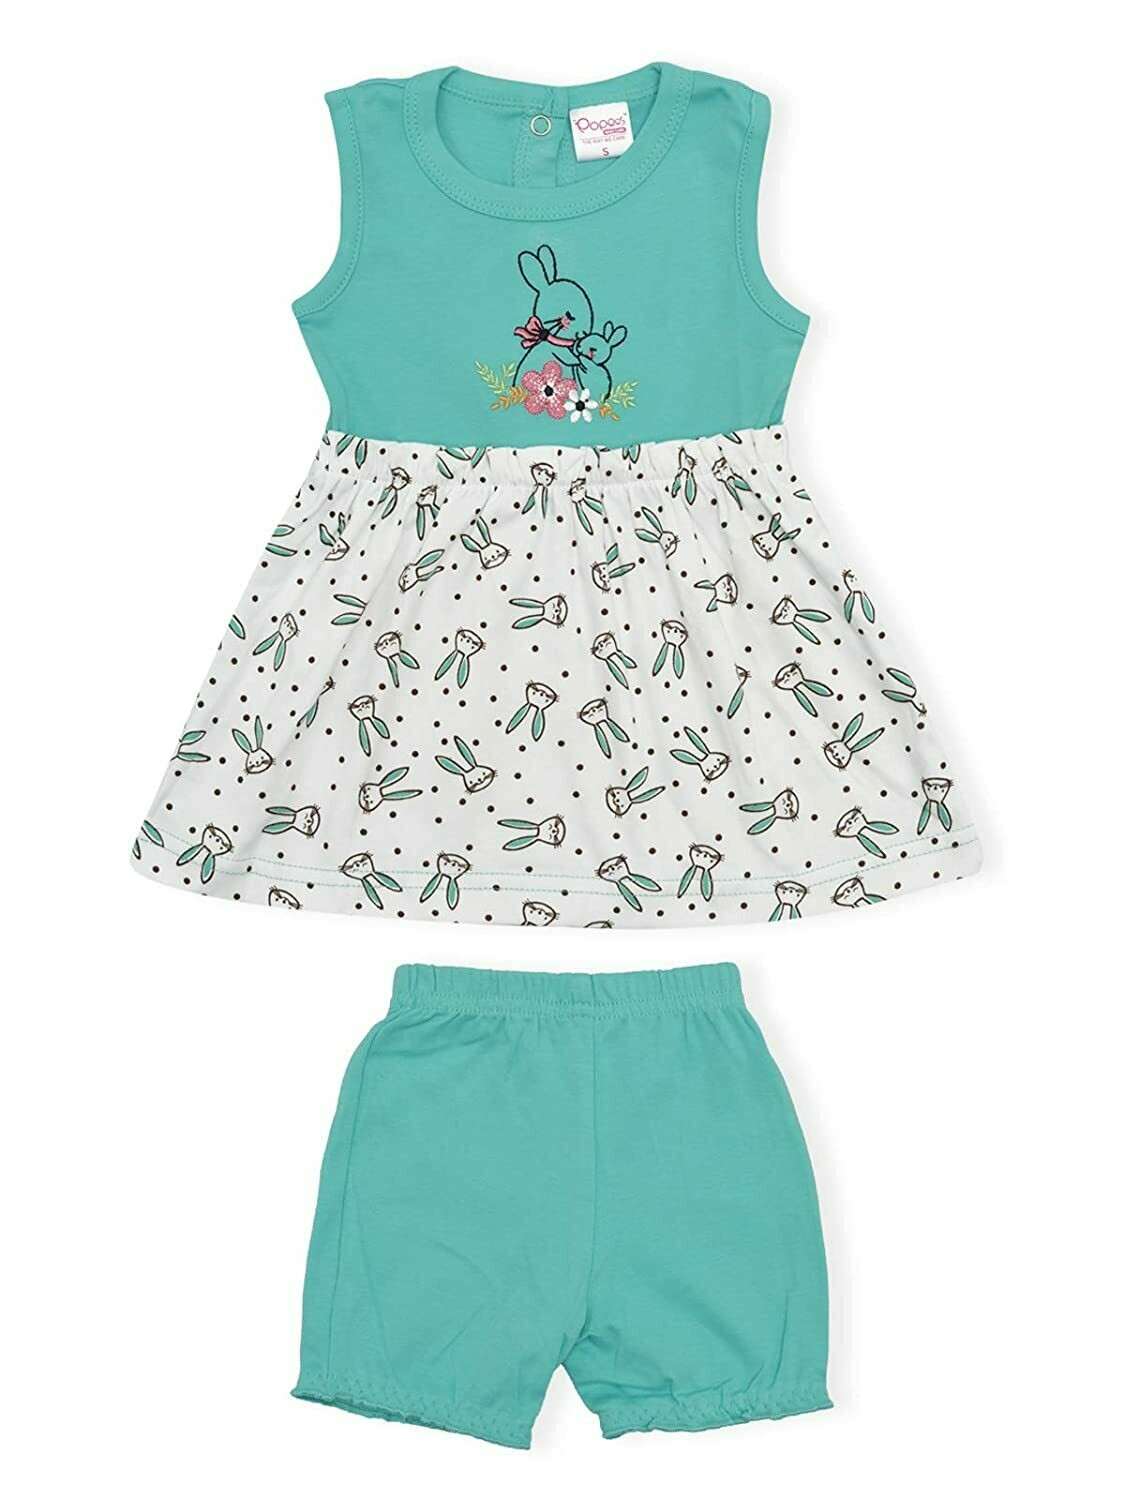 Soha Dark Green Round Neck Sleeveless Rabbit Printed Frock with Bloomer